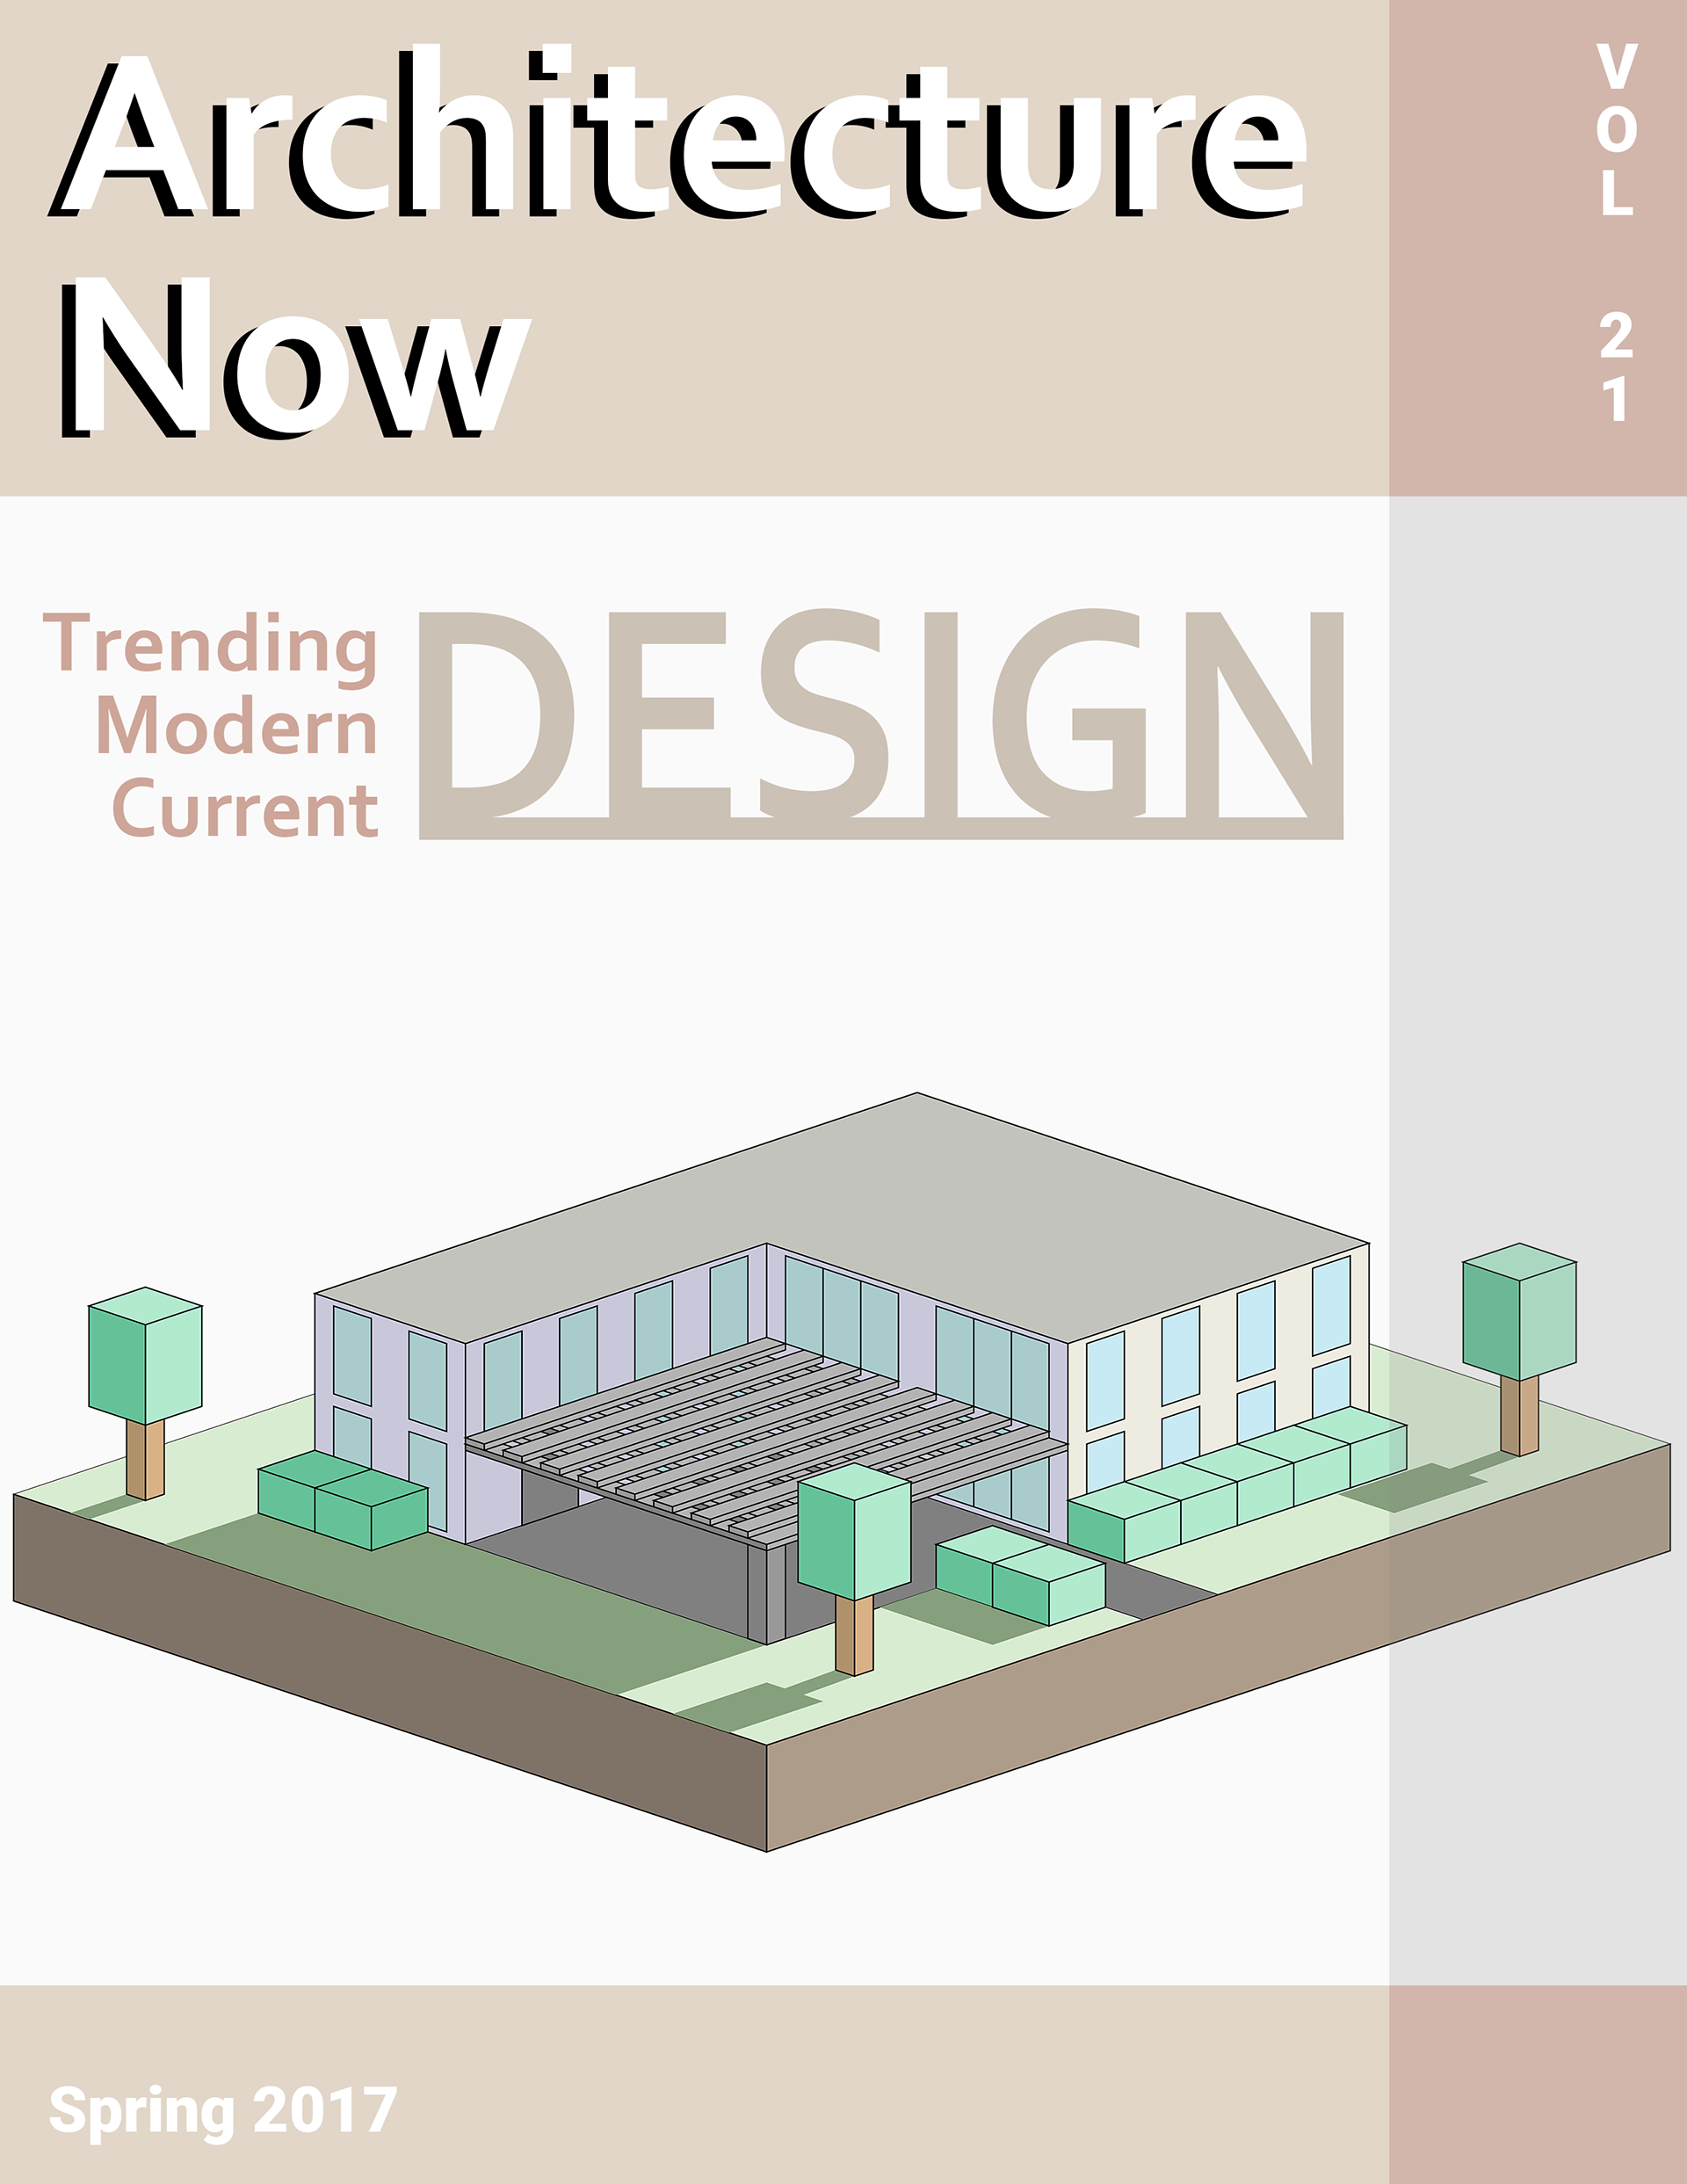 Samuel furr architecture now magazine cover for my photoshop class i was required to create a magazine cover and i decided to create a modern trendy architecture magazine with a modern isometric ccuart Choice Image